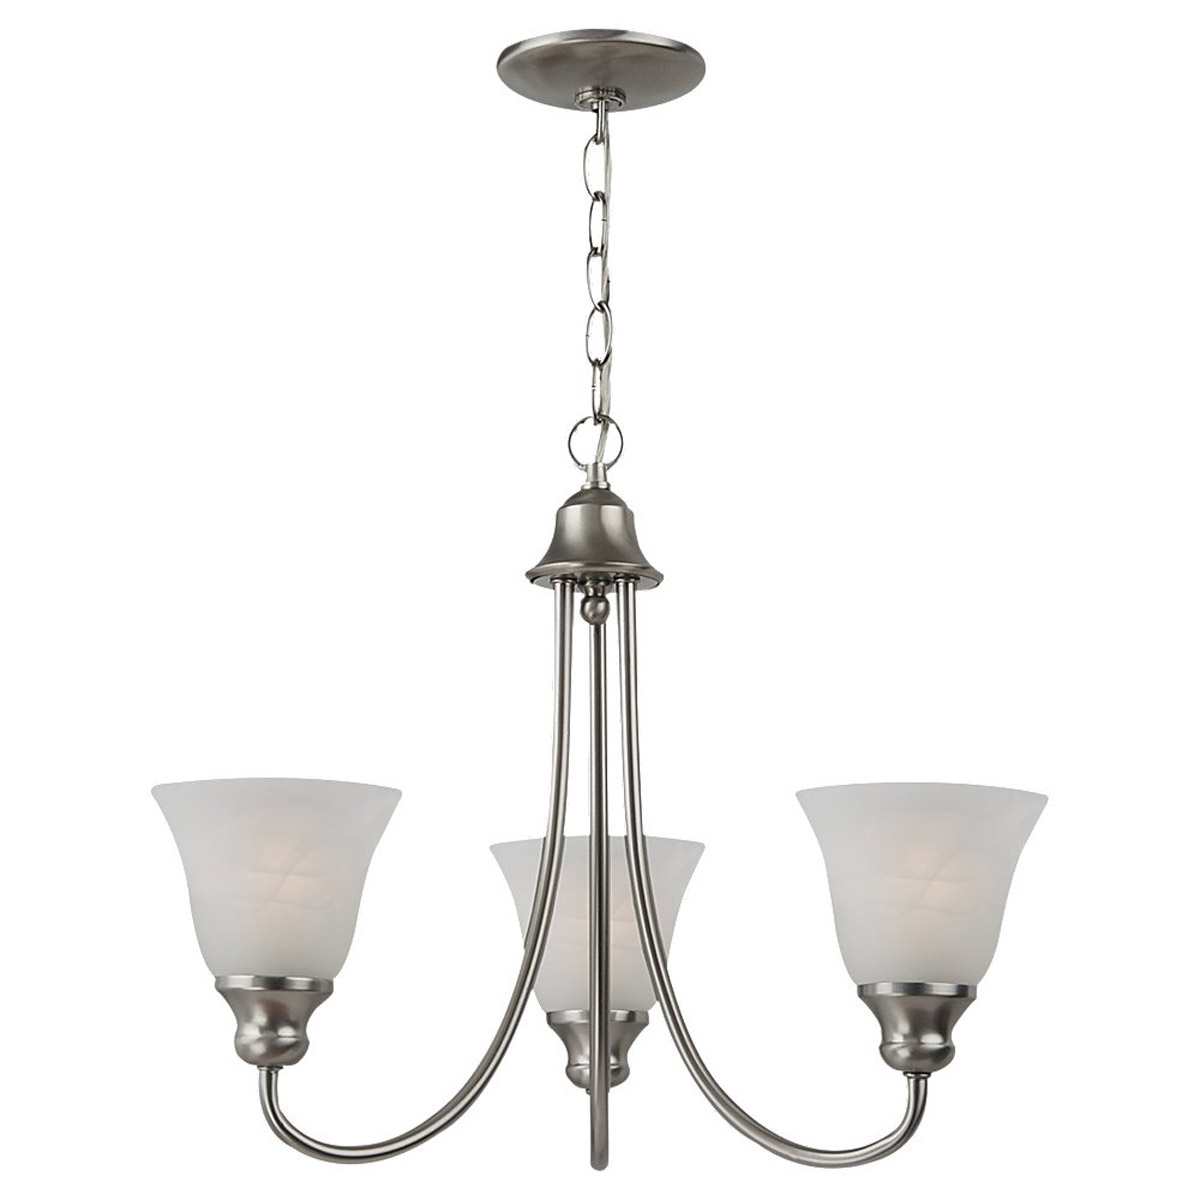 Sea Gull 35939BLE-962 Windgate 3 Light 20 inch Brushed Nickel Chandelier Ceiling Light in Fluorescent photo